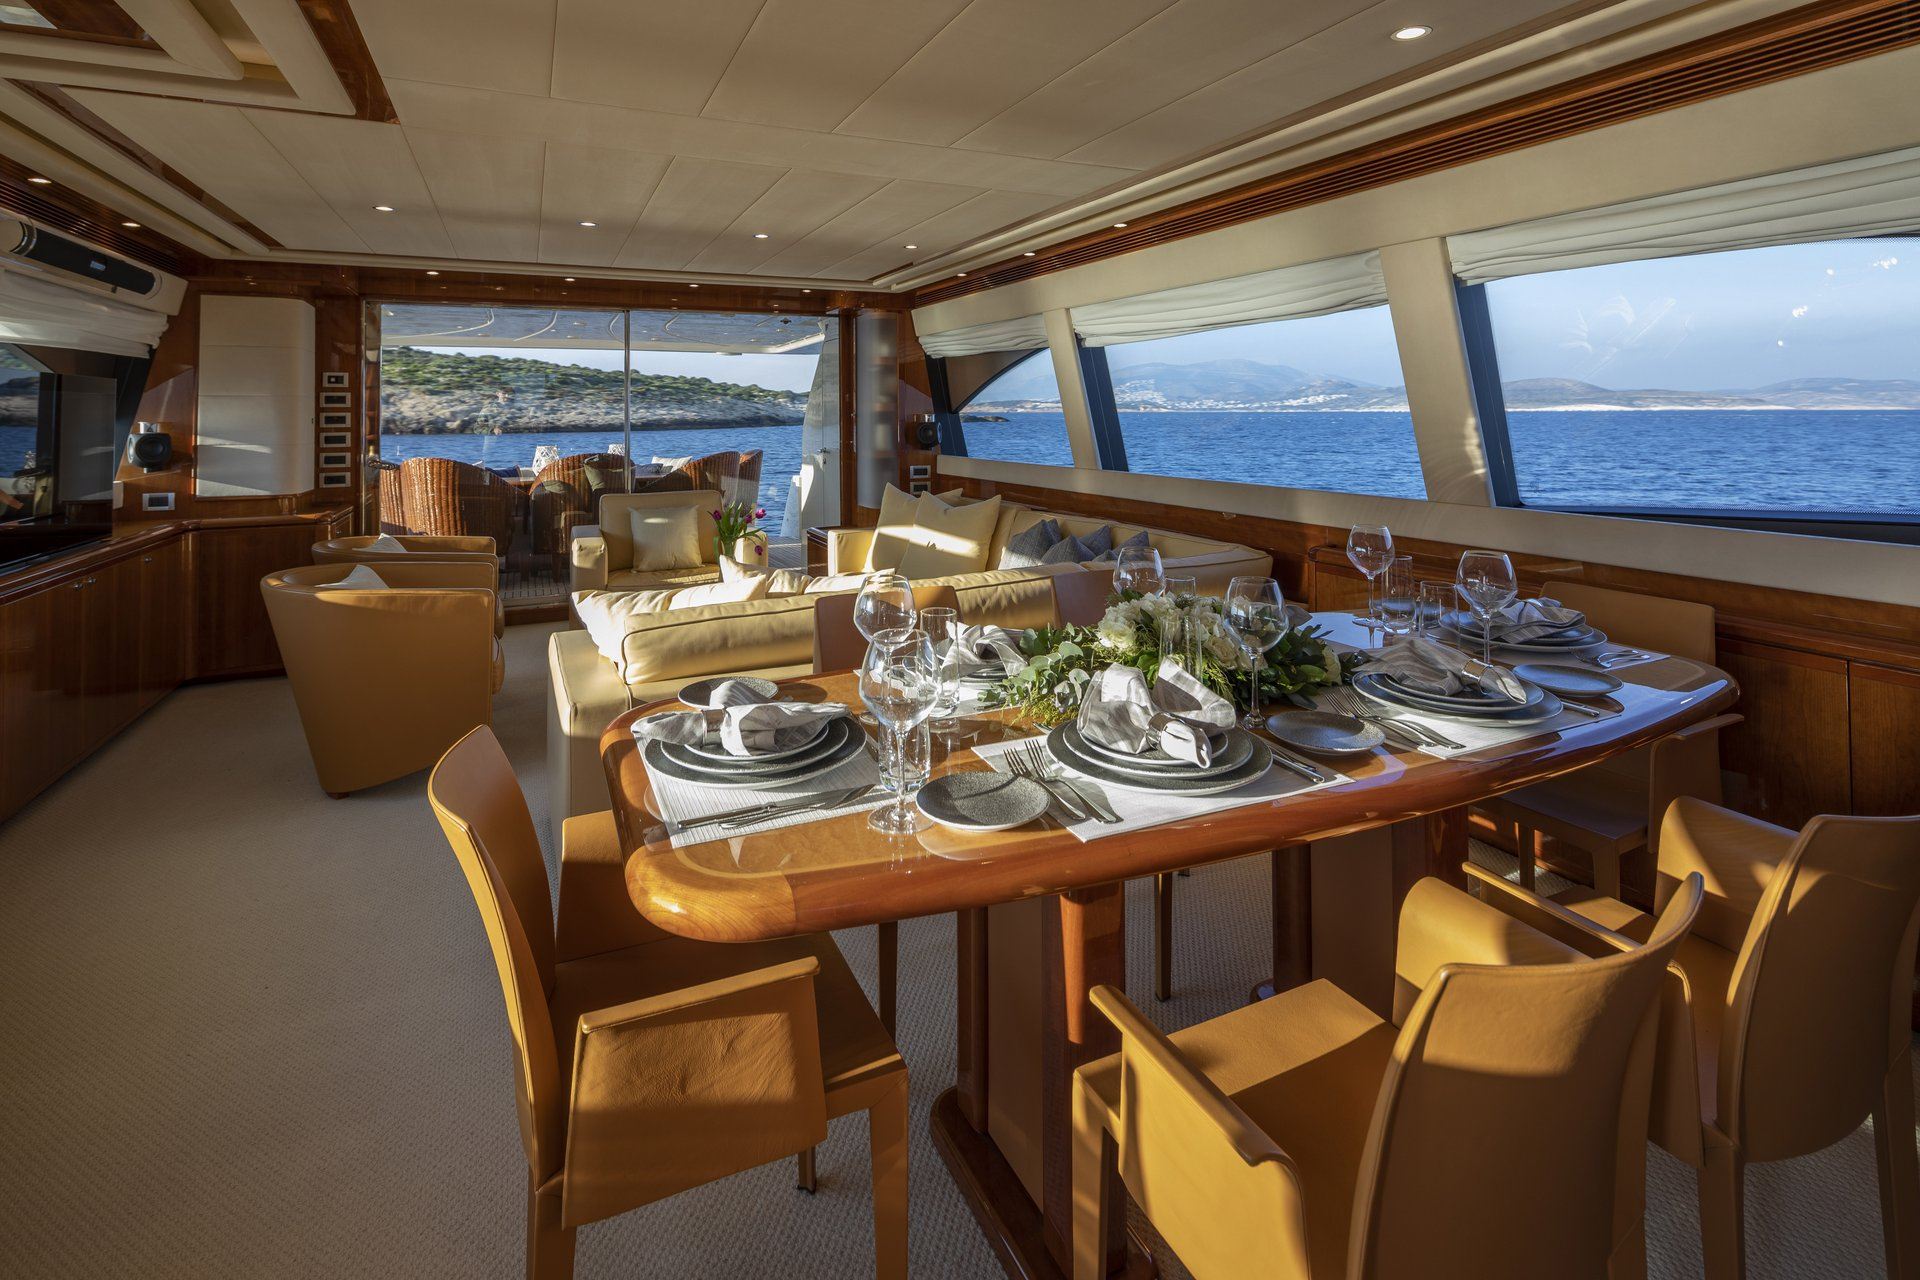 m/y astarte yacht for charter indoor dining table